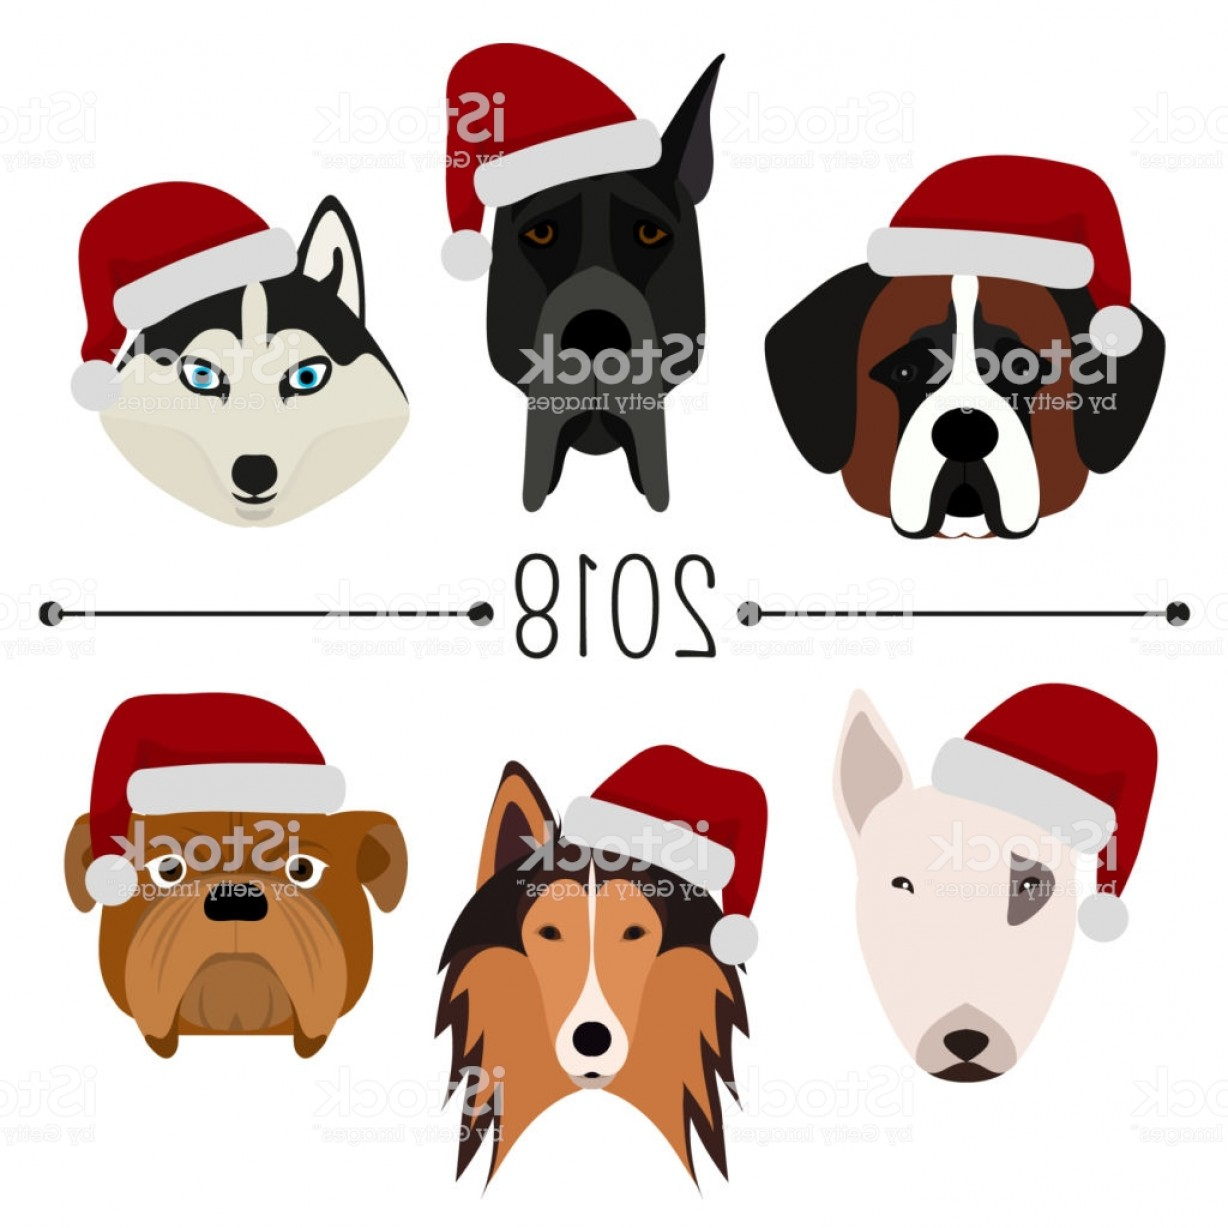 Bpxer Vector Art Happy Dog: Happy New Year Set Of Dogs Head With Santa Claus Cap Flat Design Pets Cute Gm